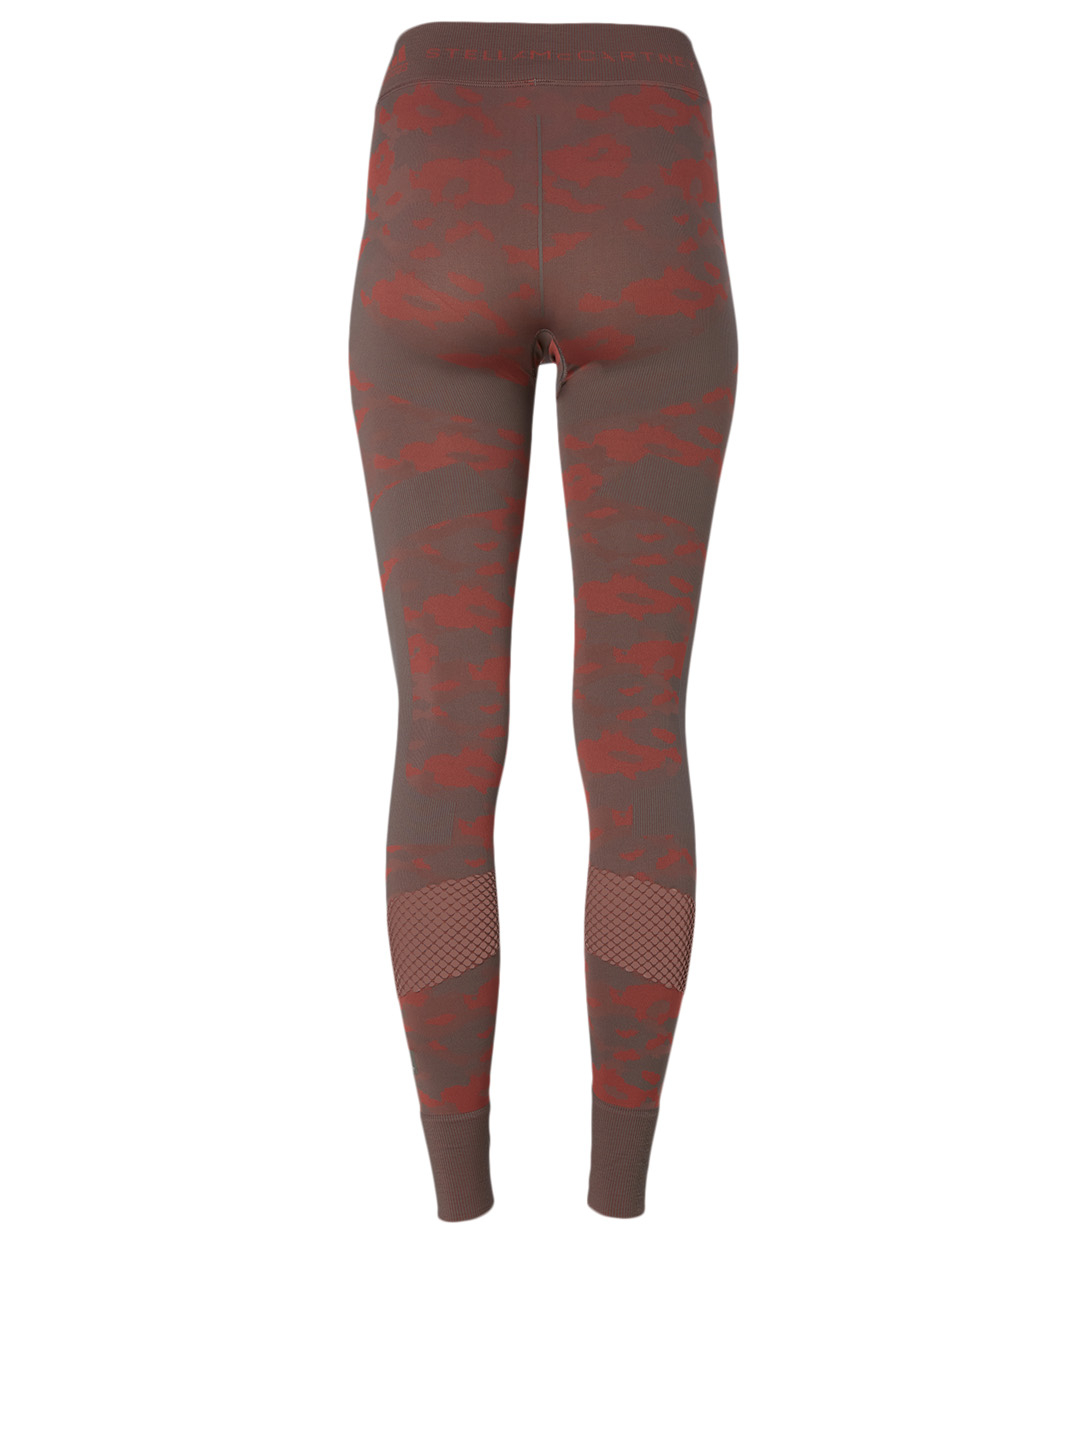 ADIDAS BY STELLA MCCARTNEY Seamless High-Waisted Leggings Women's Pink